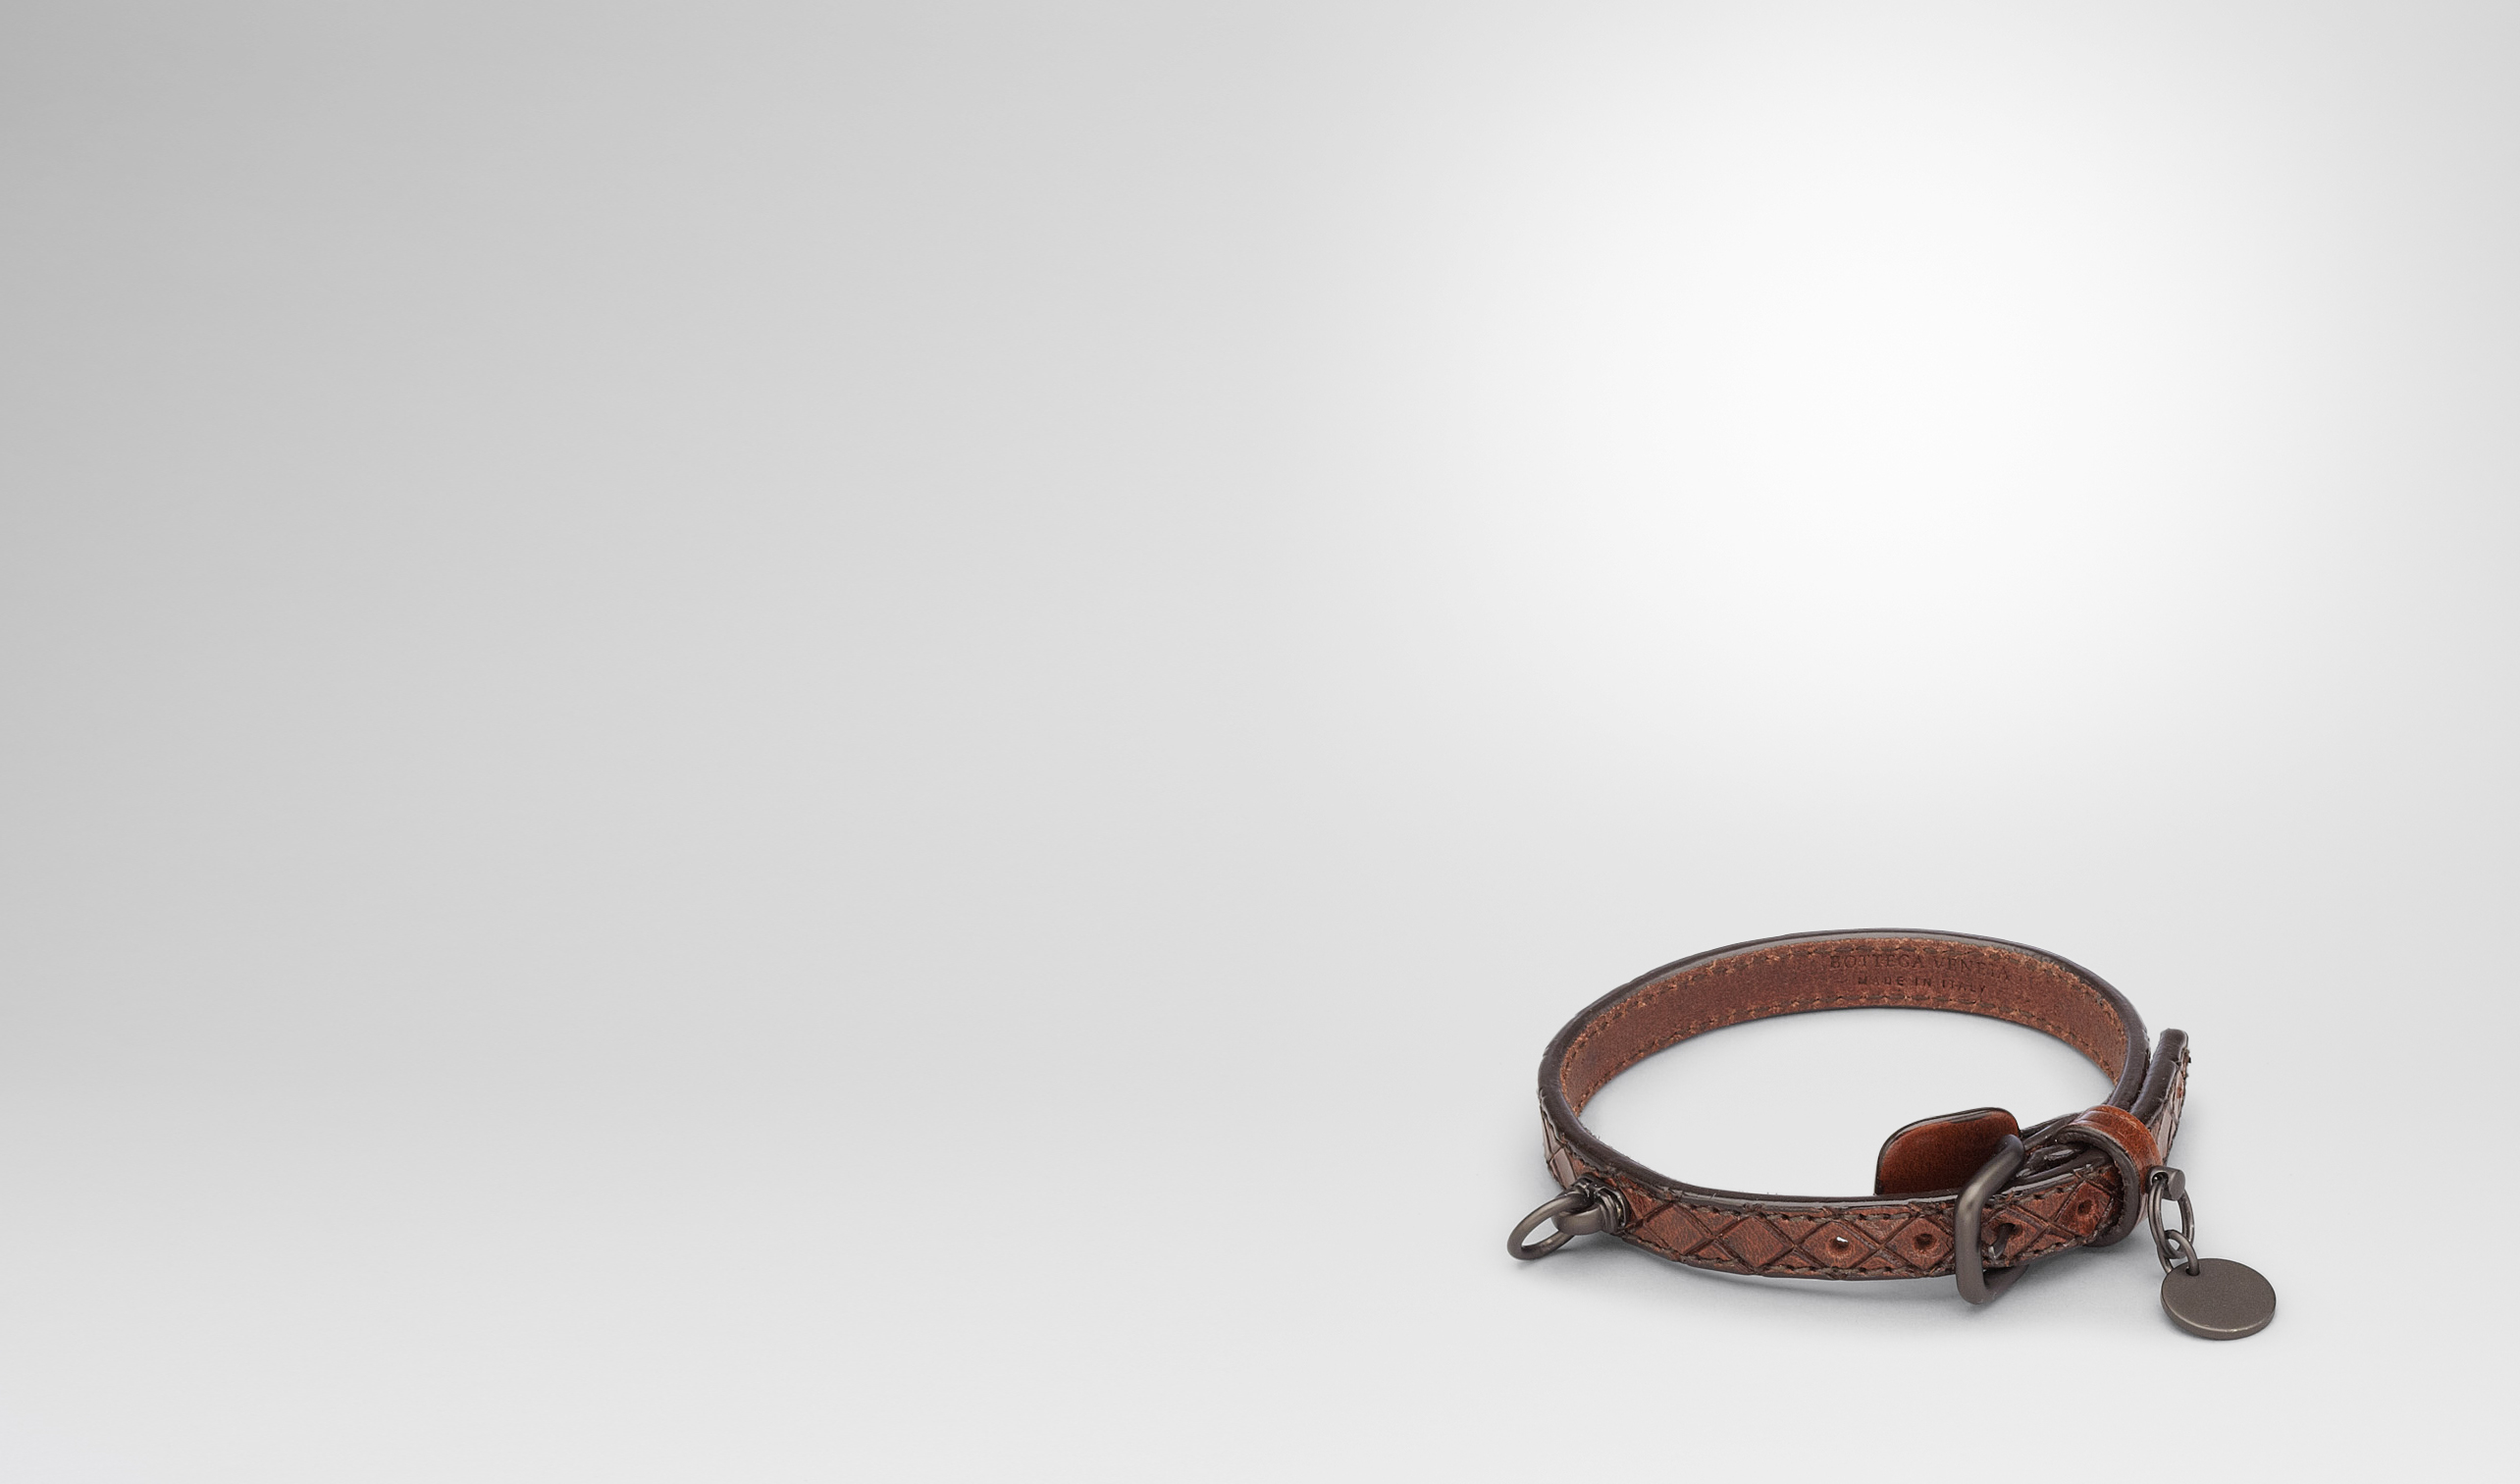 BOTTEGA VENETA Pet Accessory E Ebano Intreccio Scolpito Dog Collar pl